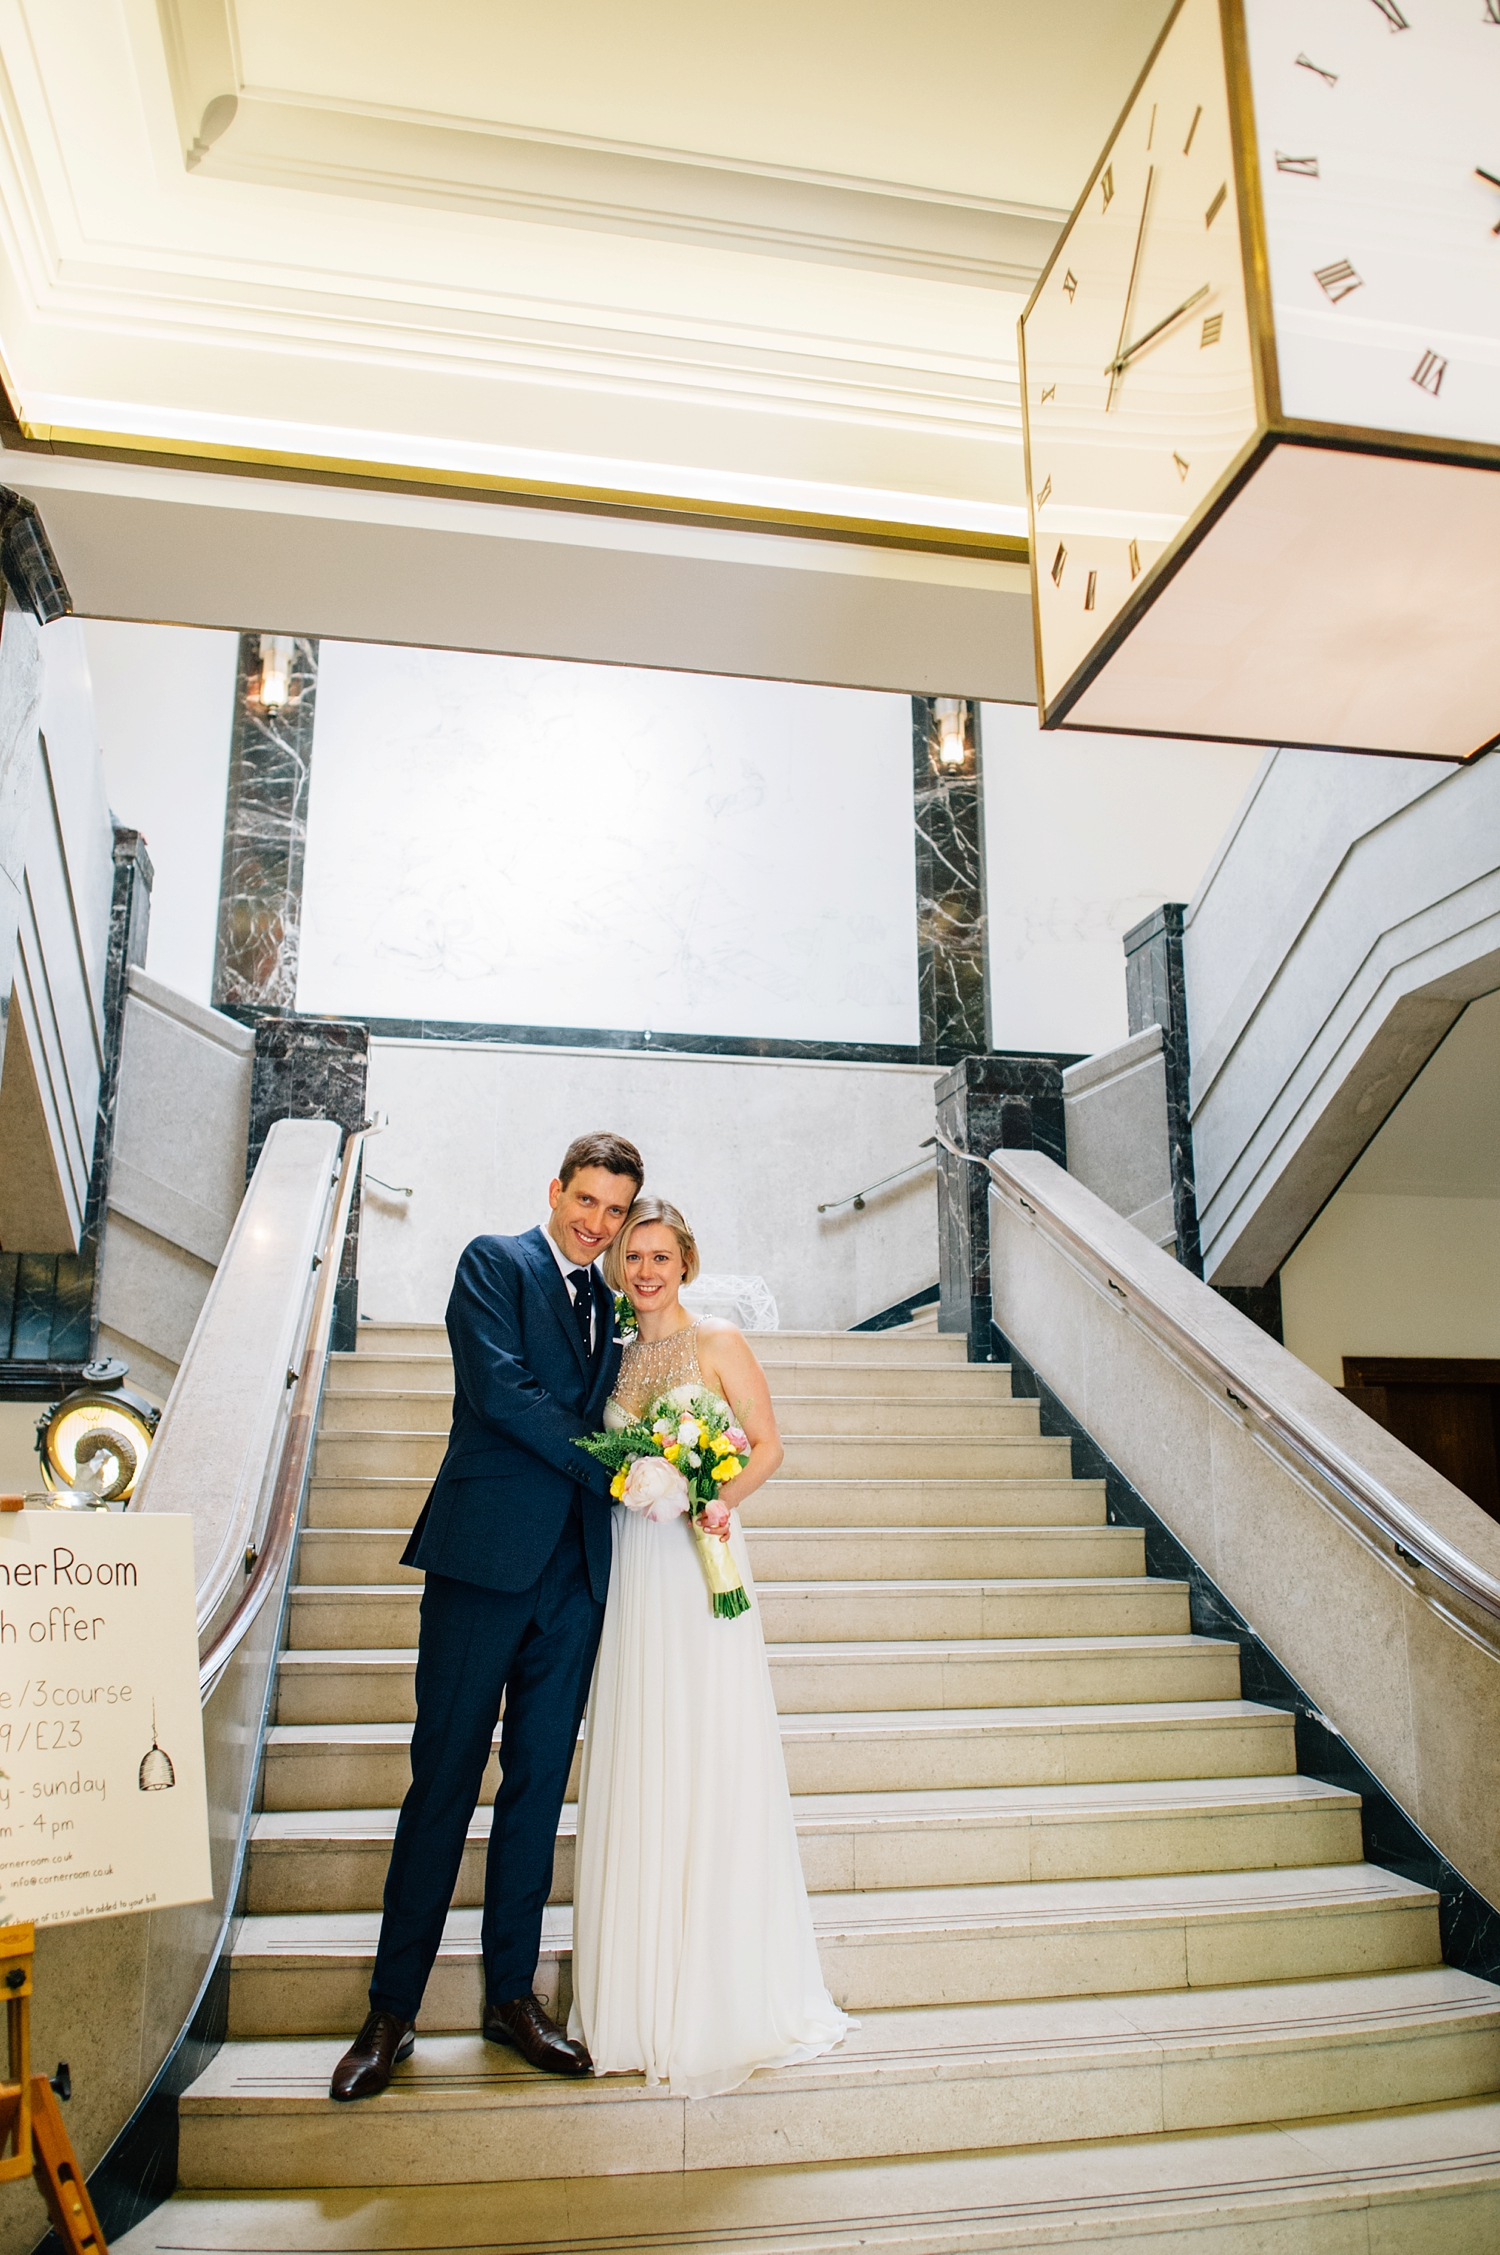 0070-lisa-devine-alternative-wedding-photography-london-hackney-dalston-london-photography-townhall-hotel.JPG